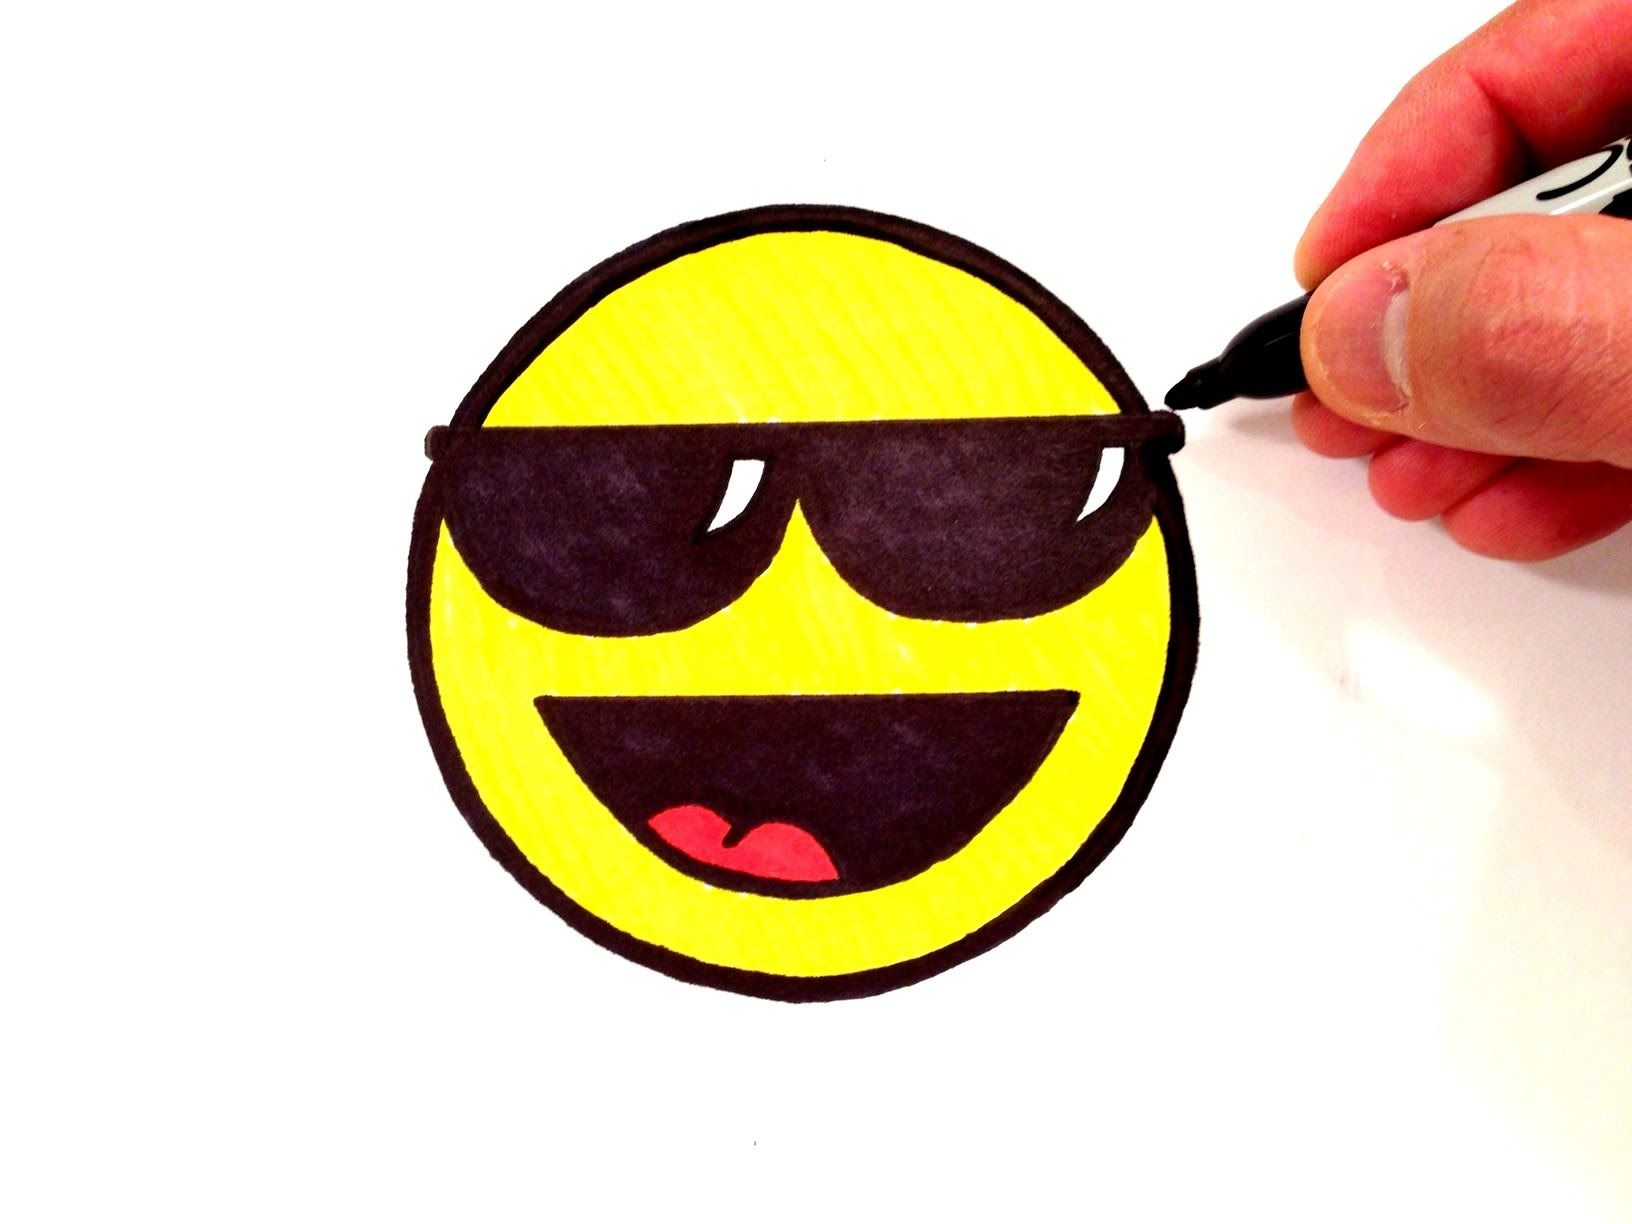 How to draw a cool smiley face with sunglasses youtube